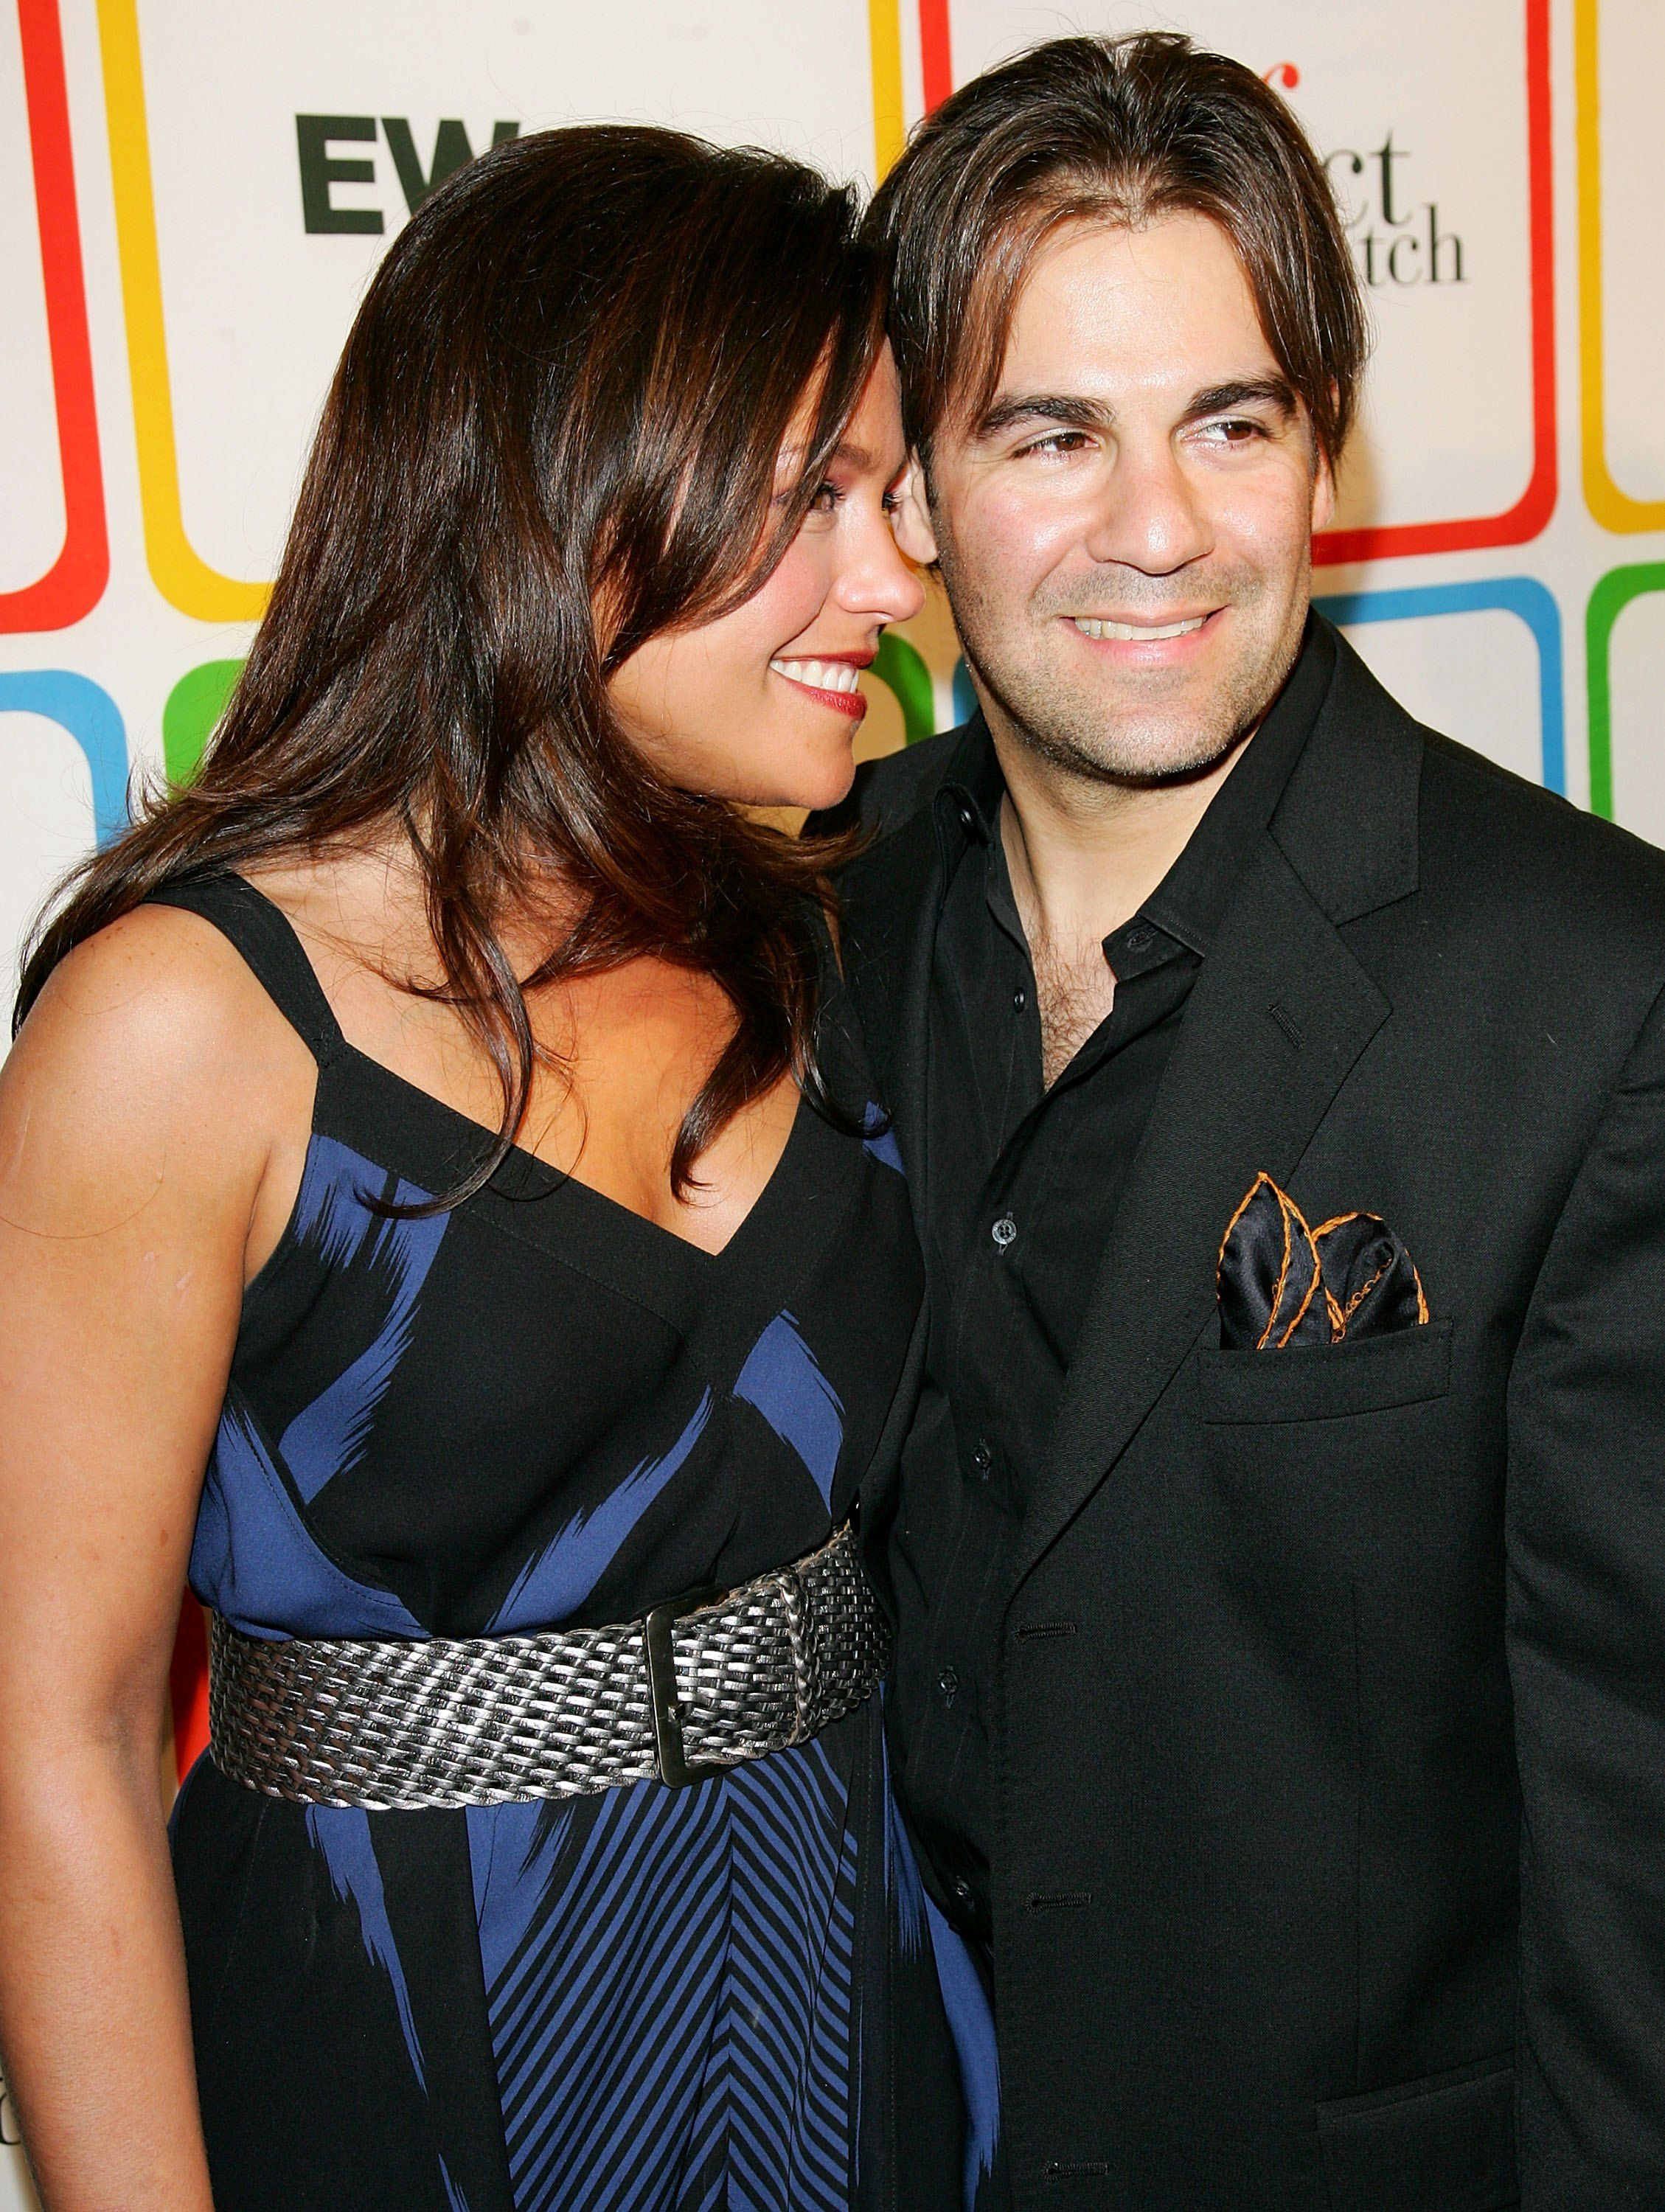 """Rachael Ray and John Cusimano at Entertainment Weekly's """"Must List"""" party in 2006 